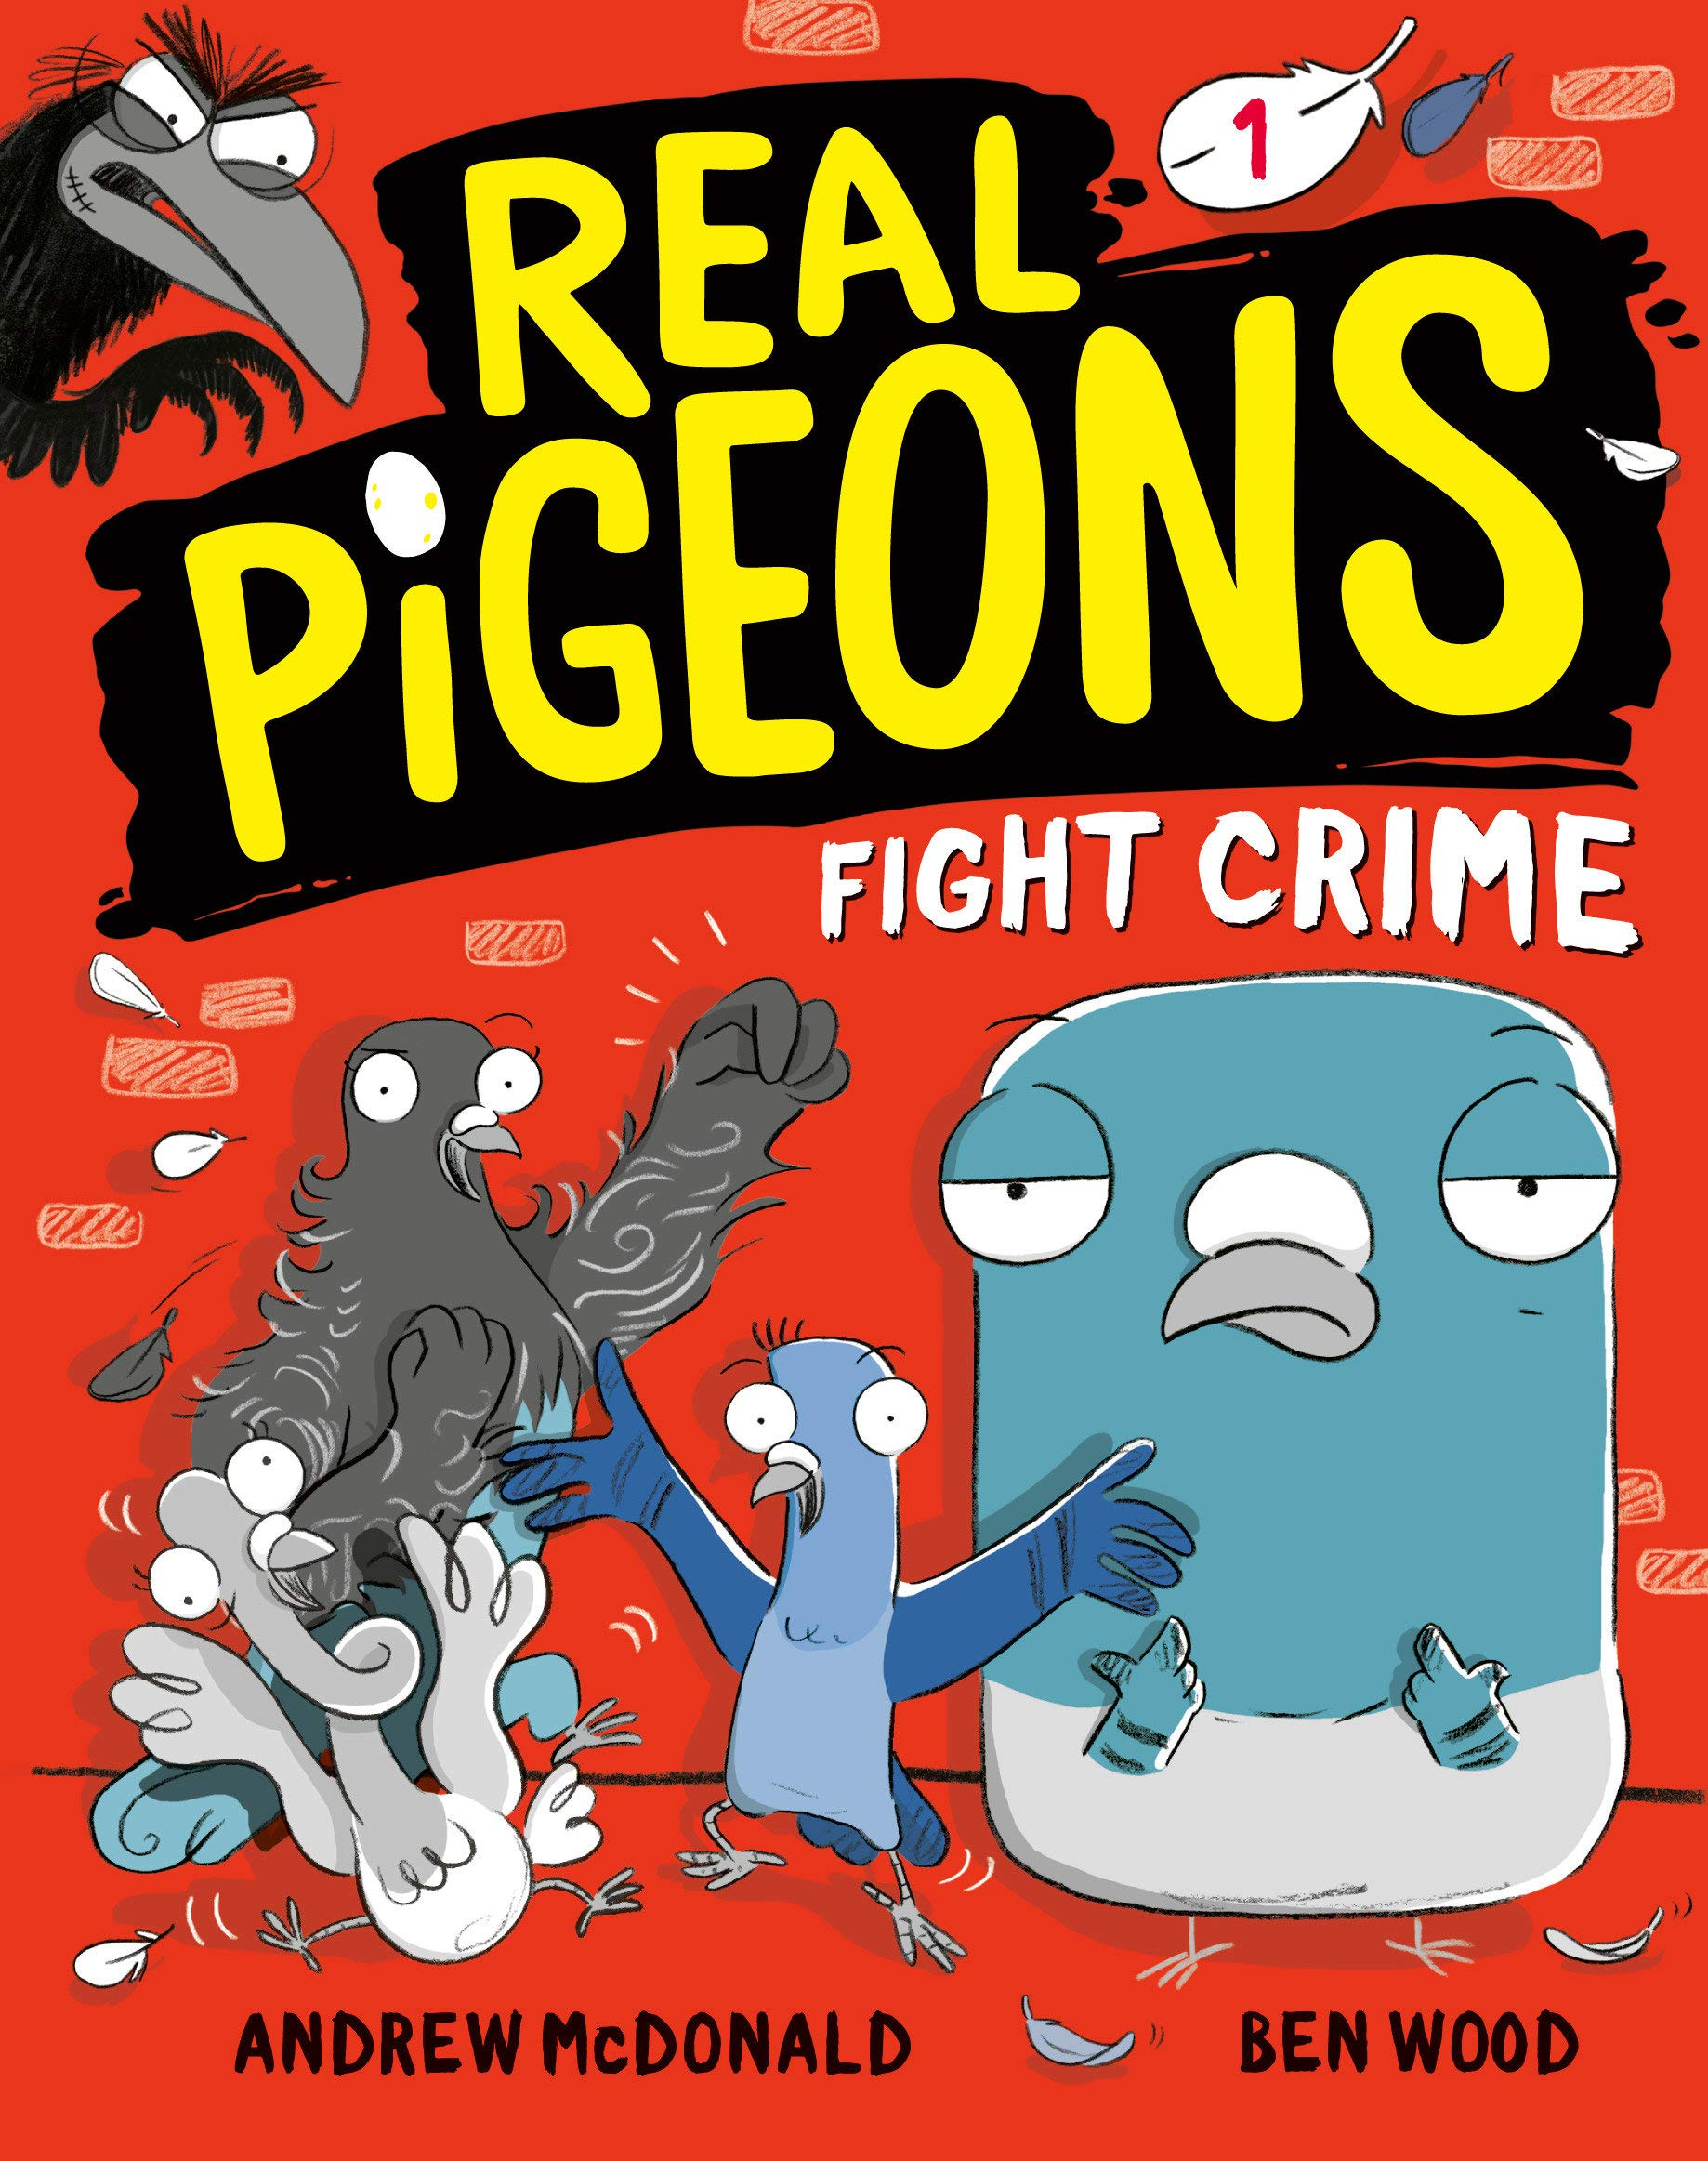 Amazon.com: Real Pigeons Fight Crime (Book 1) (9780593119426): McDonald,  Andrew, Wood, Ben: Books